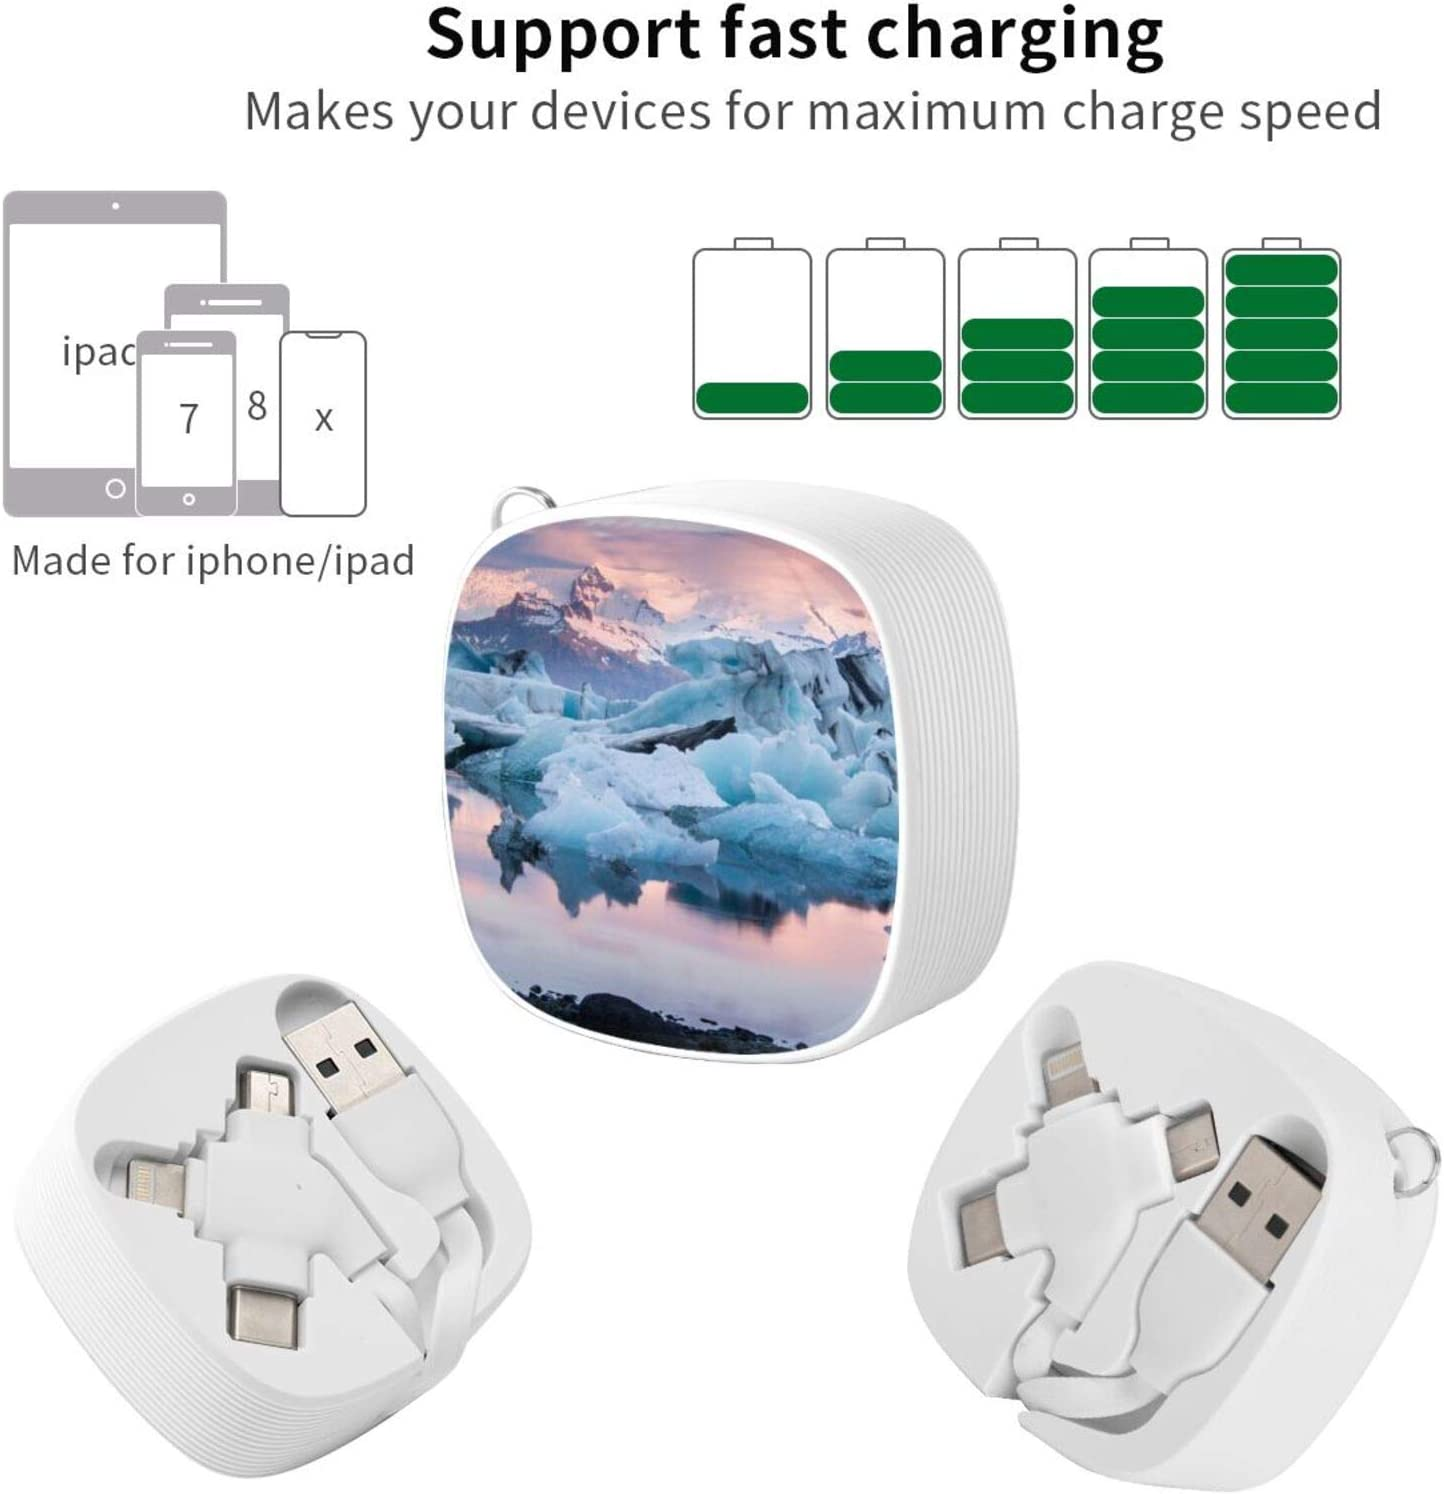 Glacier World Icelandic Miraclethe Square Three-in-One USB Cable is A Universal Interface Charging Cable Suitable for Various Mobile Phones and Tablets